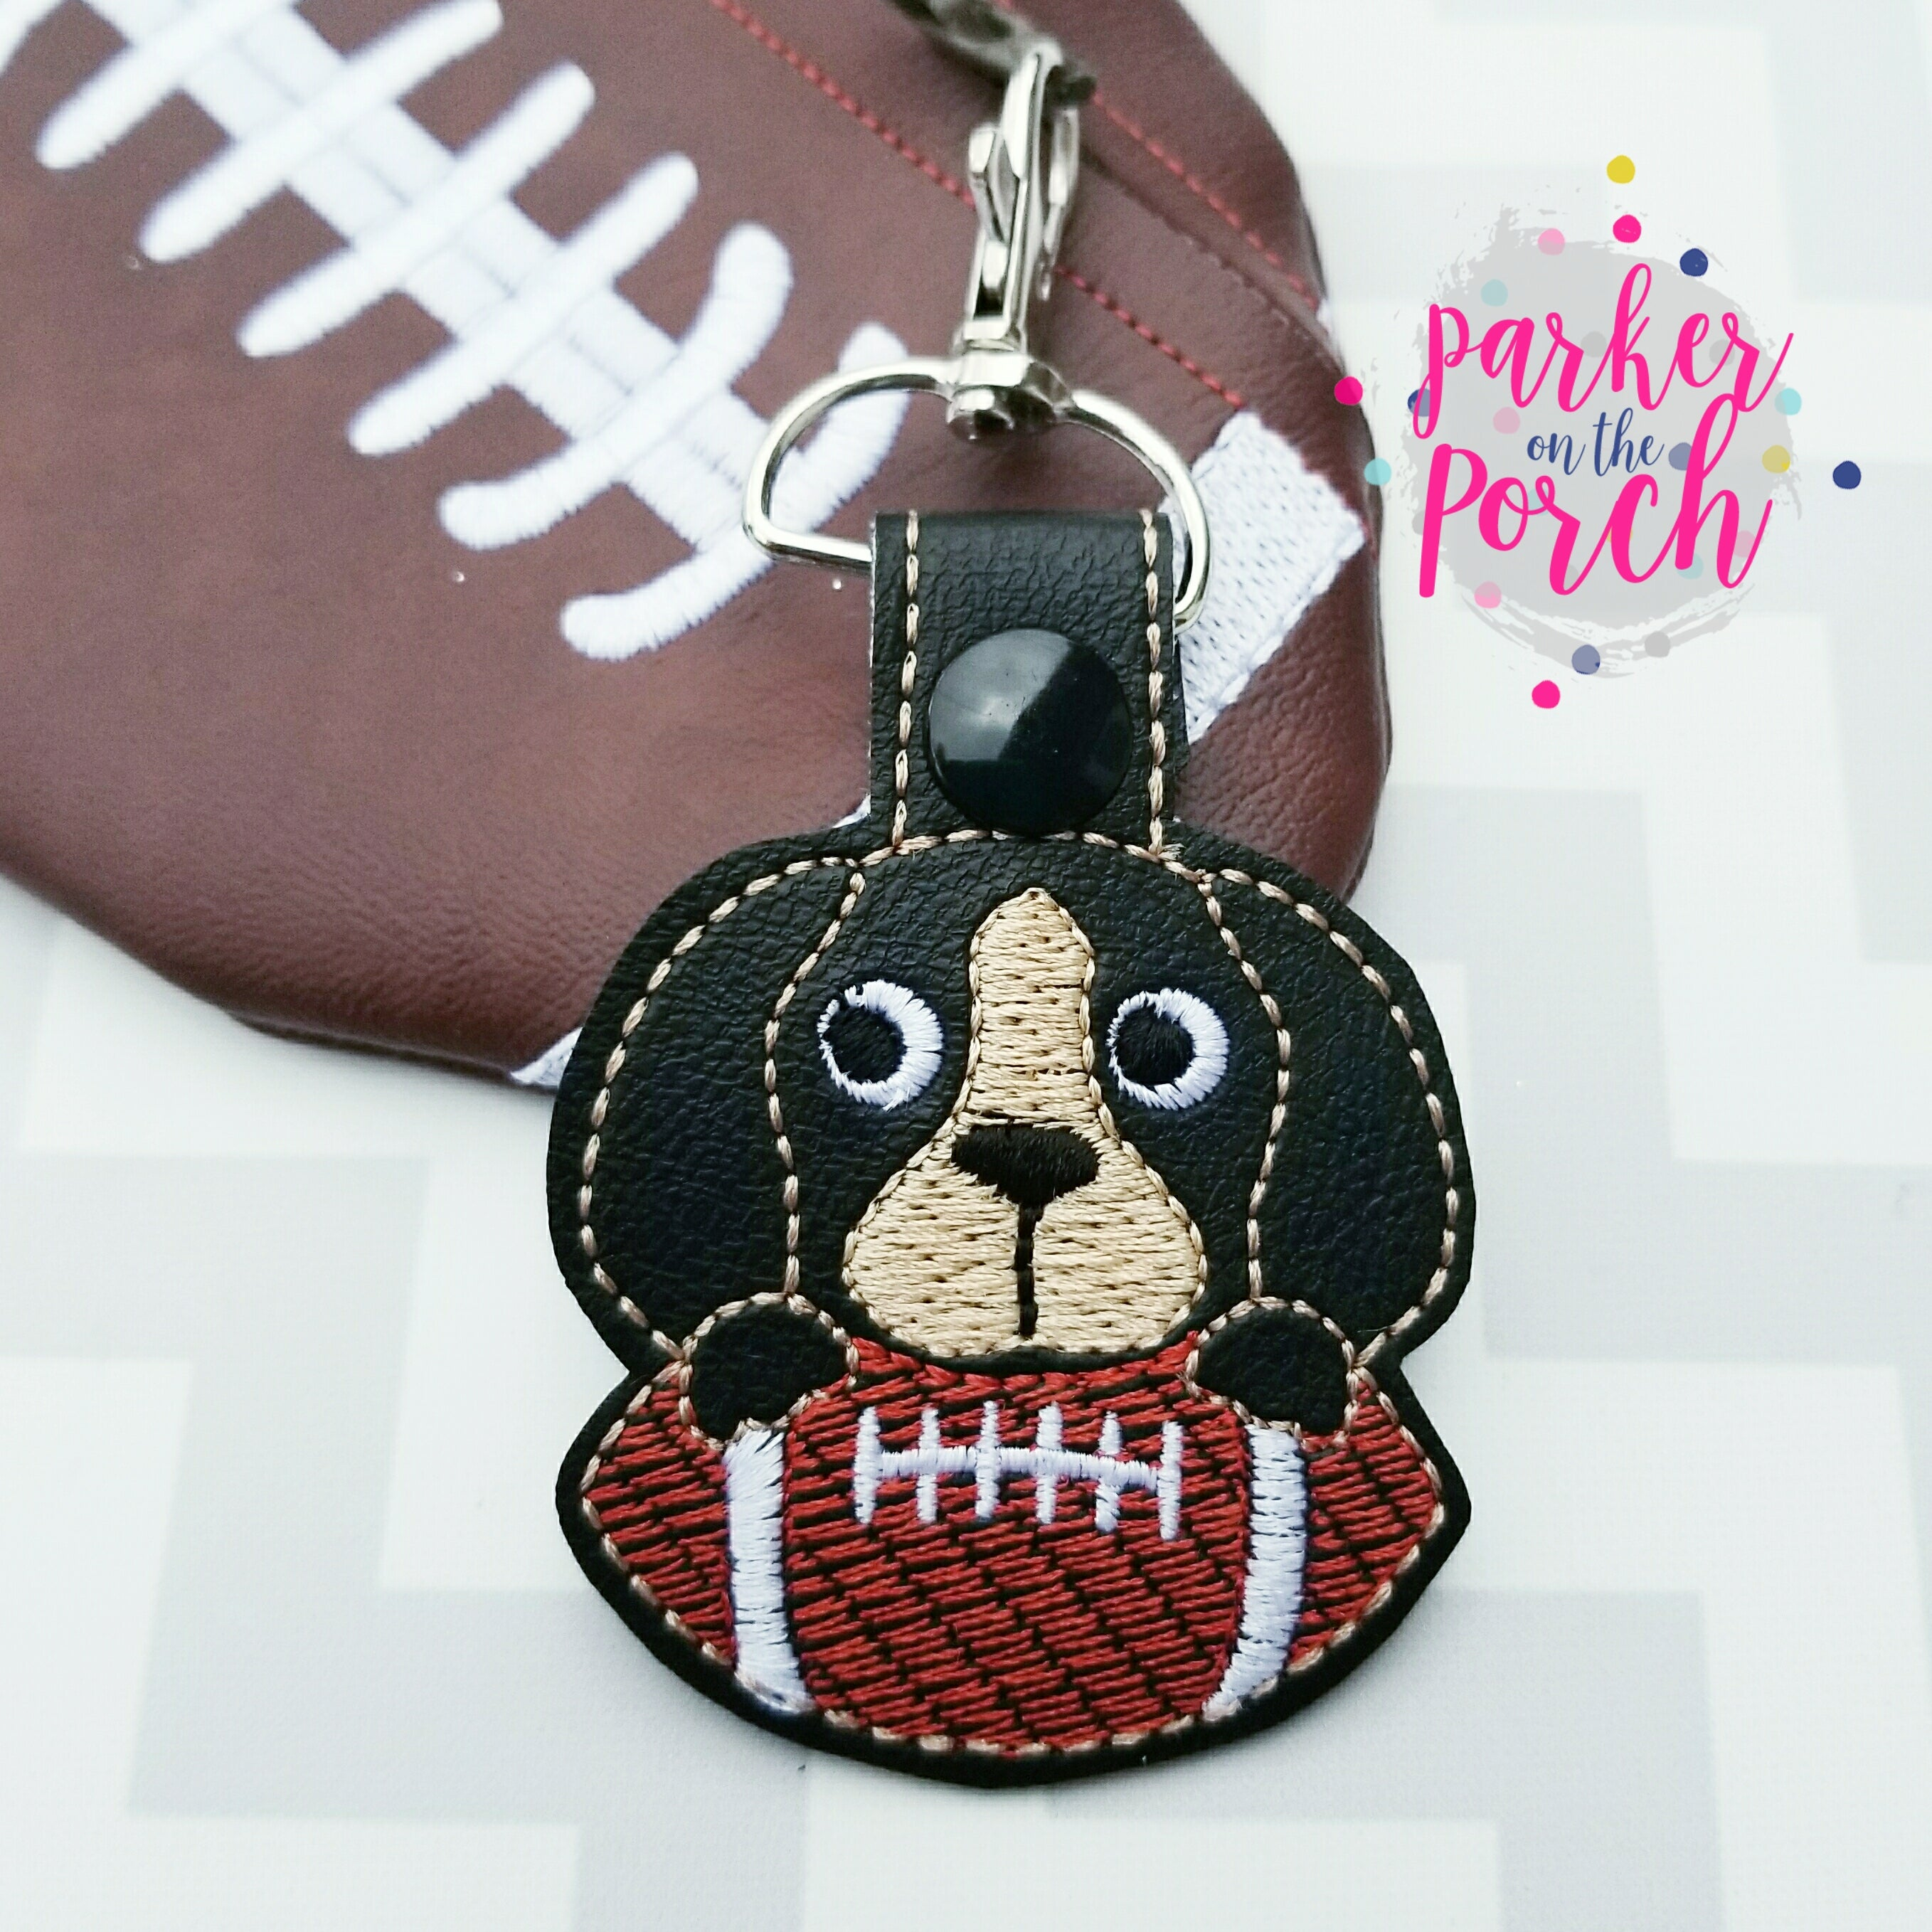 Digital Download- Mascot Hound Dog Snaptab - in the hoop machine embroidery